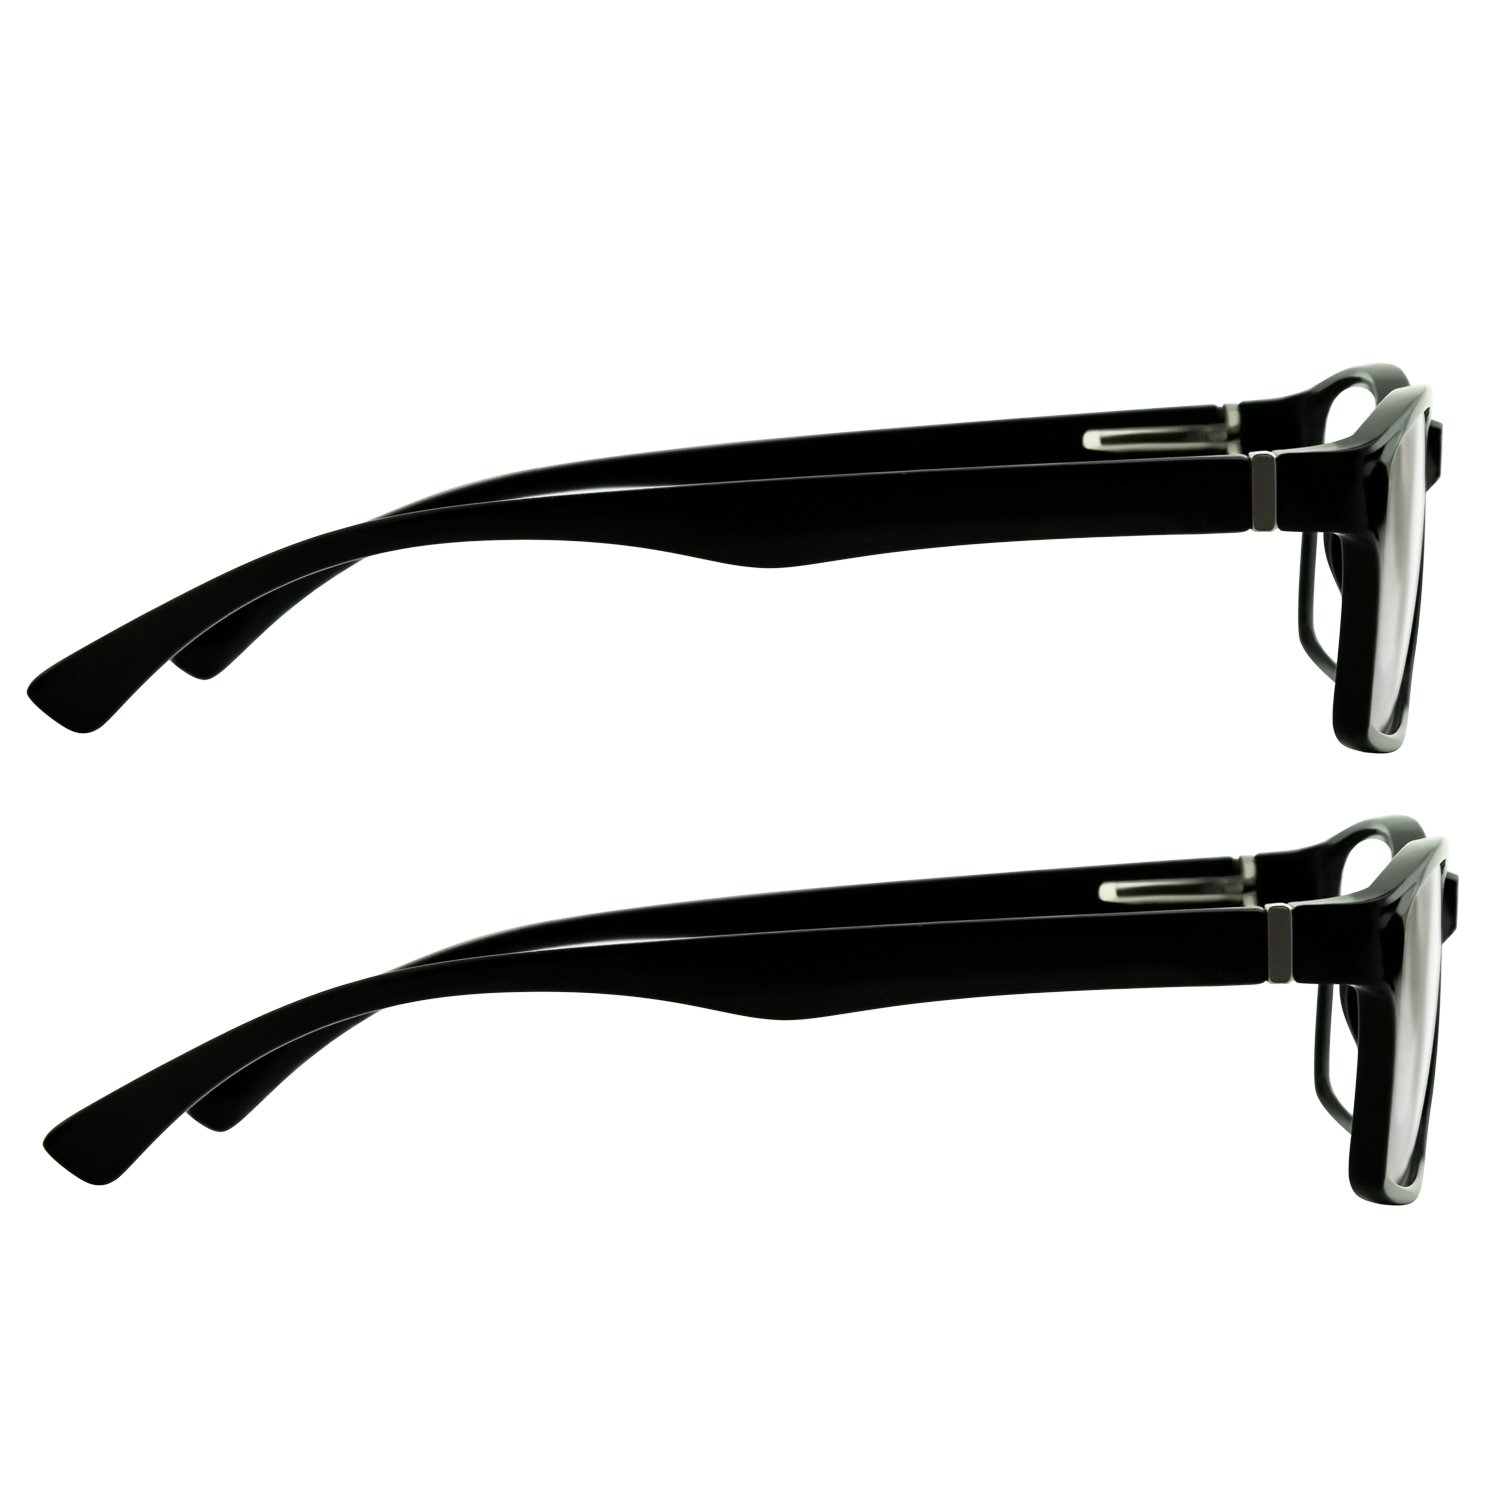 Computer Reading Glasses 0.00 Black 2 Pack Protect Your Eyes Against Eye Strain, Fatigue and Dry Eyes from Digital Gear with Anti Blue Light, Anti UV, Anti Glare, and are Anti Reflective by TruVision Readers (Image #9)